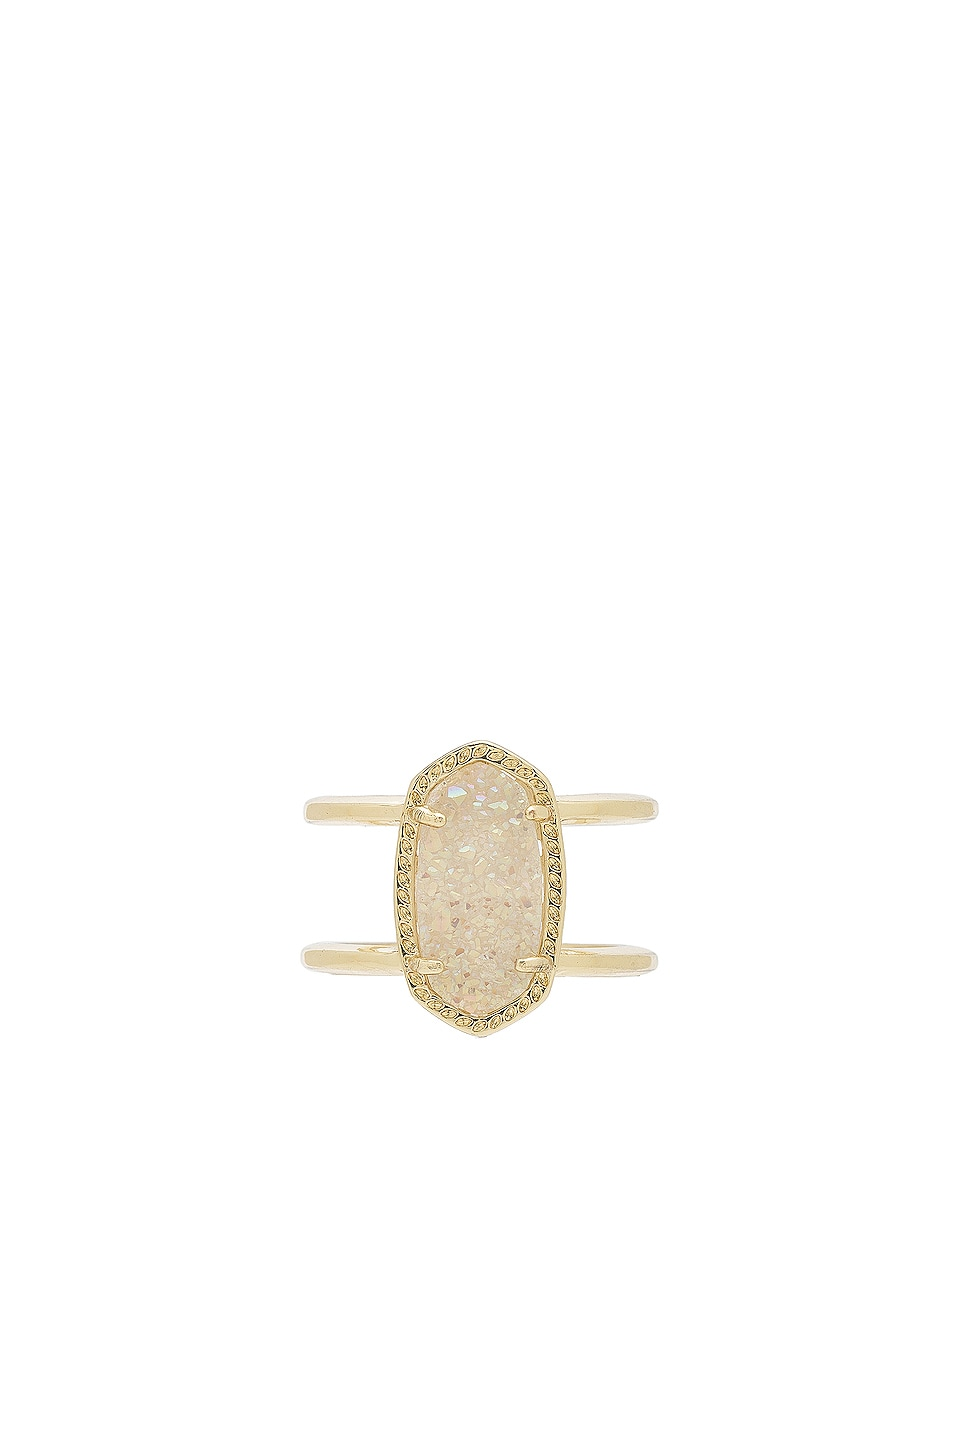 Kendra Scott Elyse Ring in Gold & Iridescent Drusy